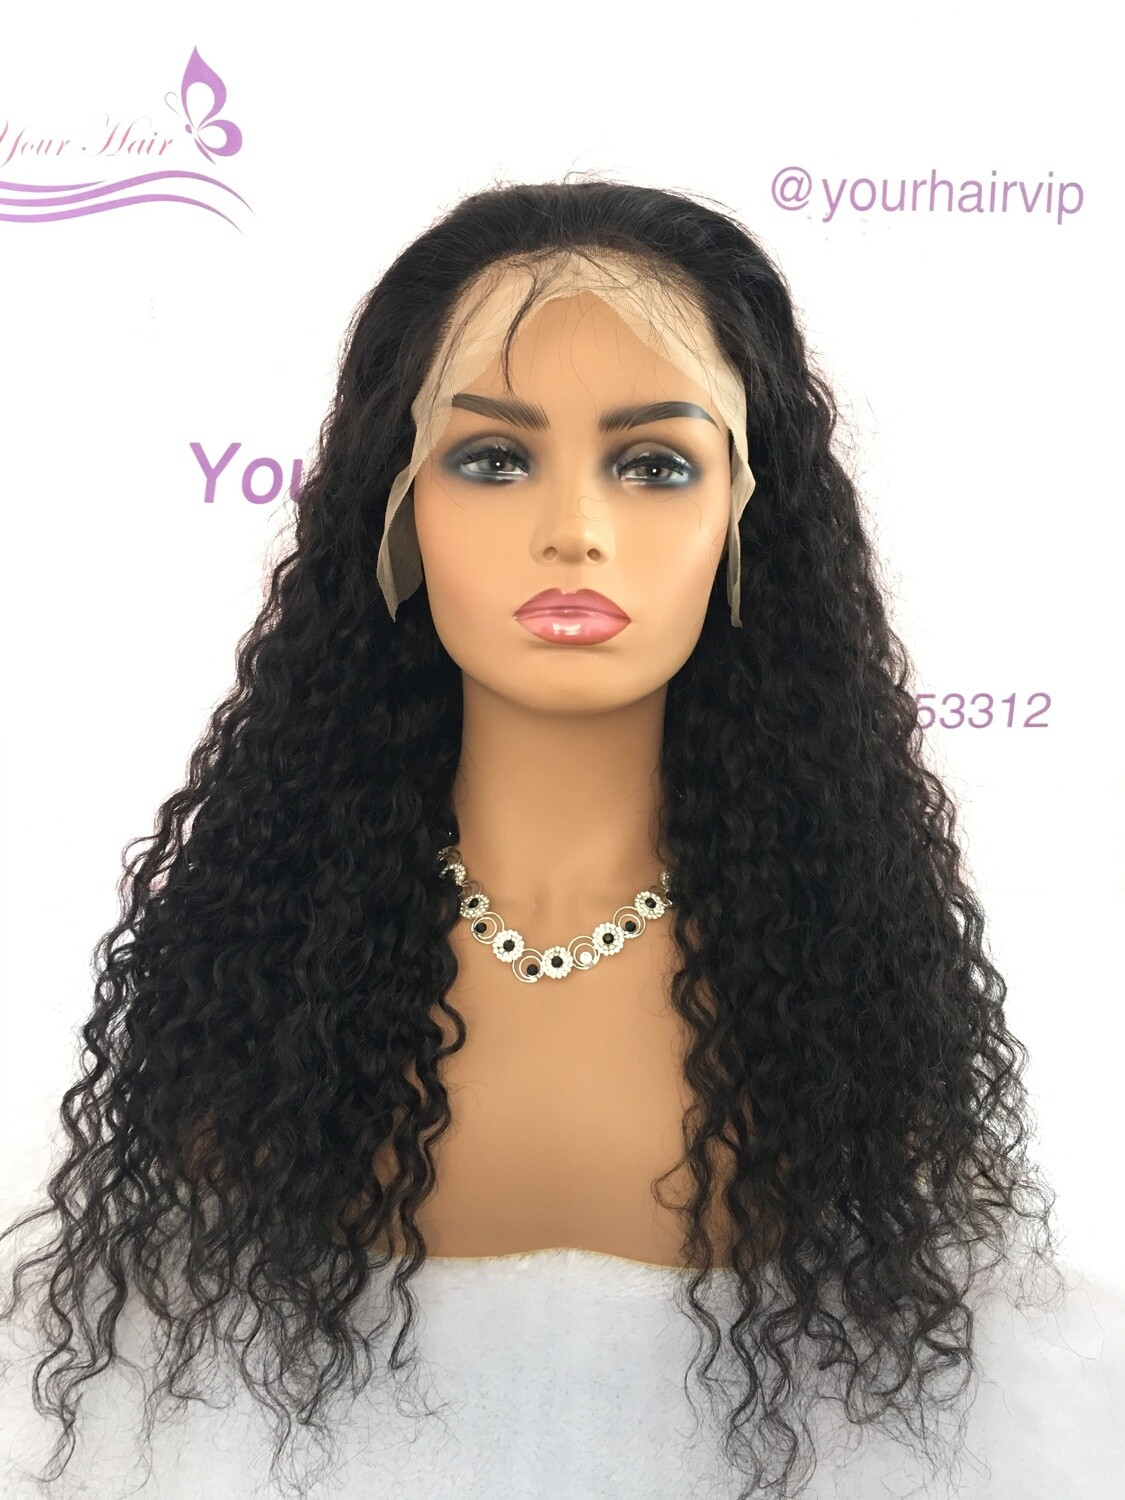 Transparent Lace Raw Curly Full Lace Frontal 13*6 Wig Human Hair  Can be dyed